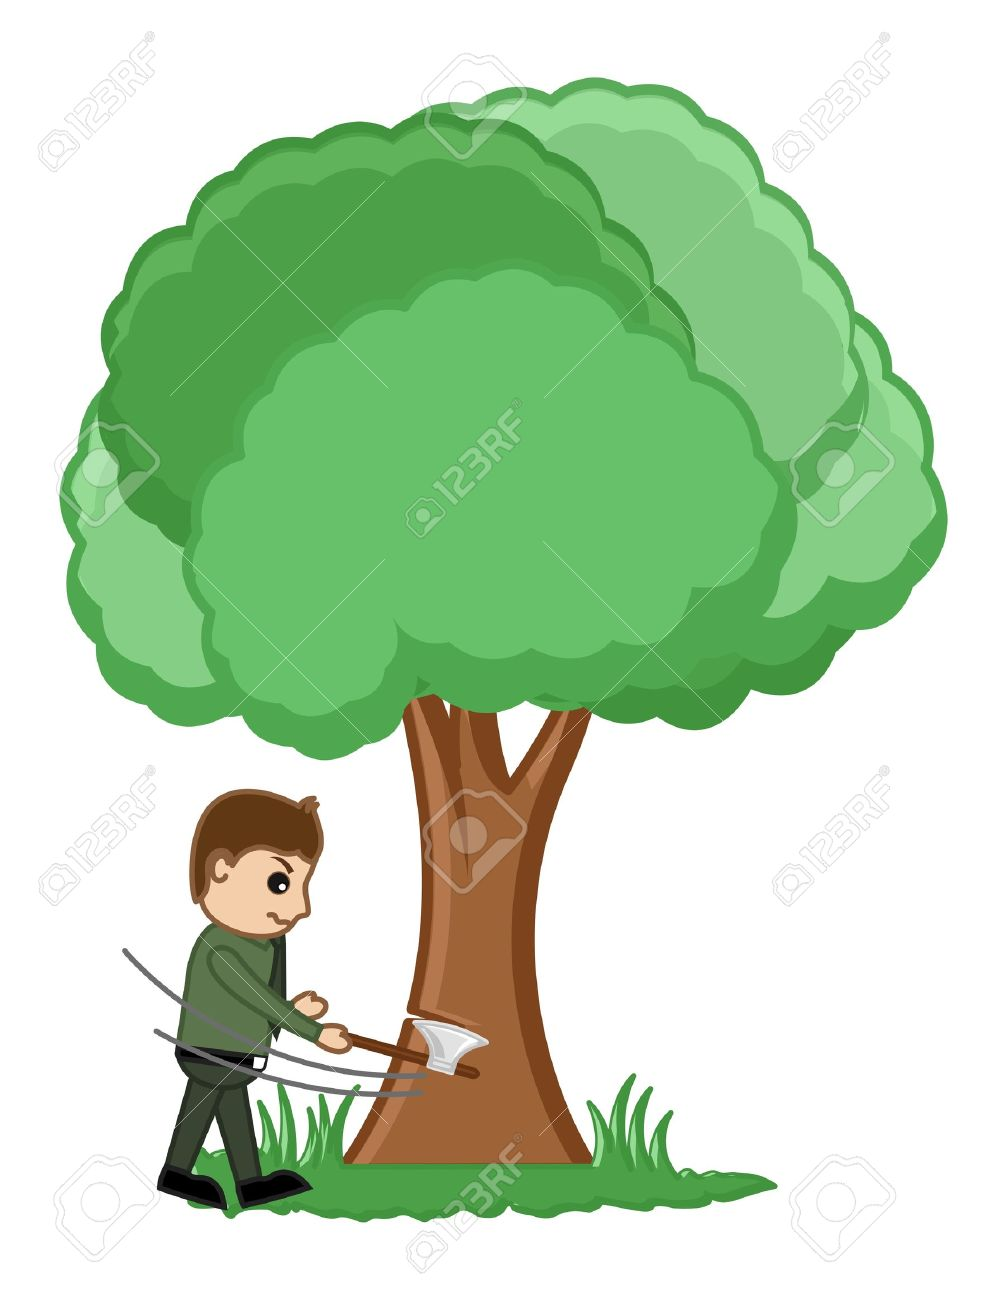 Man Cutting Tree Illustration Royalty Free Cliparts Vectors And Stock Illustration Image 20719037